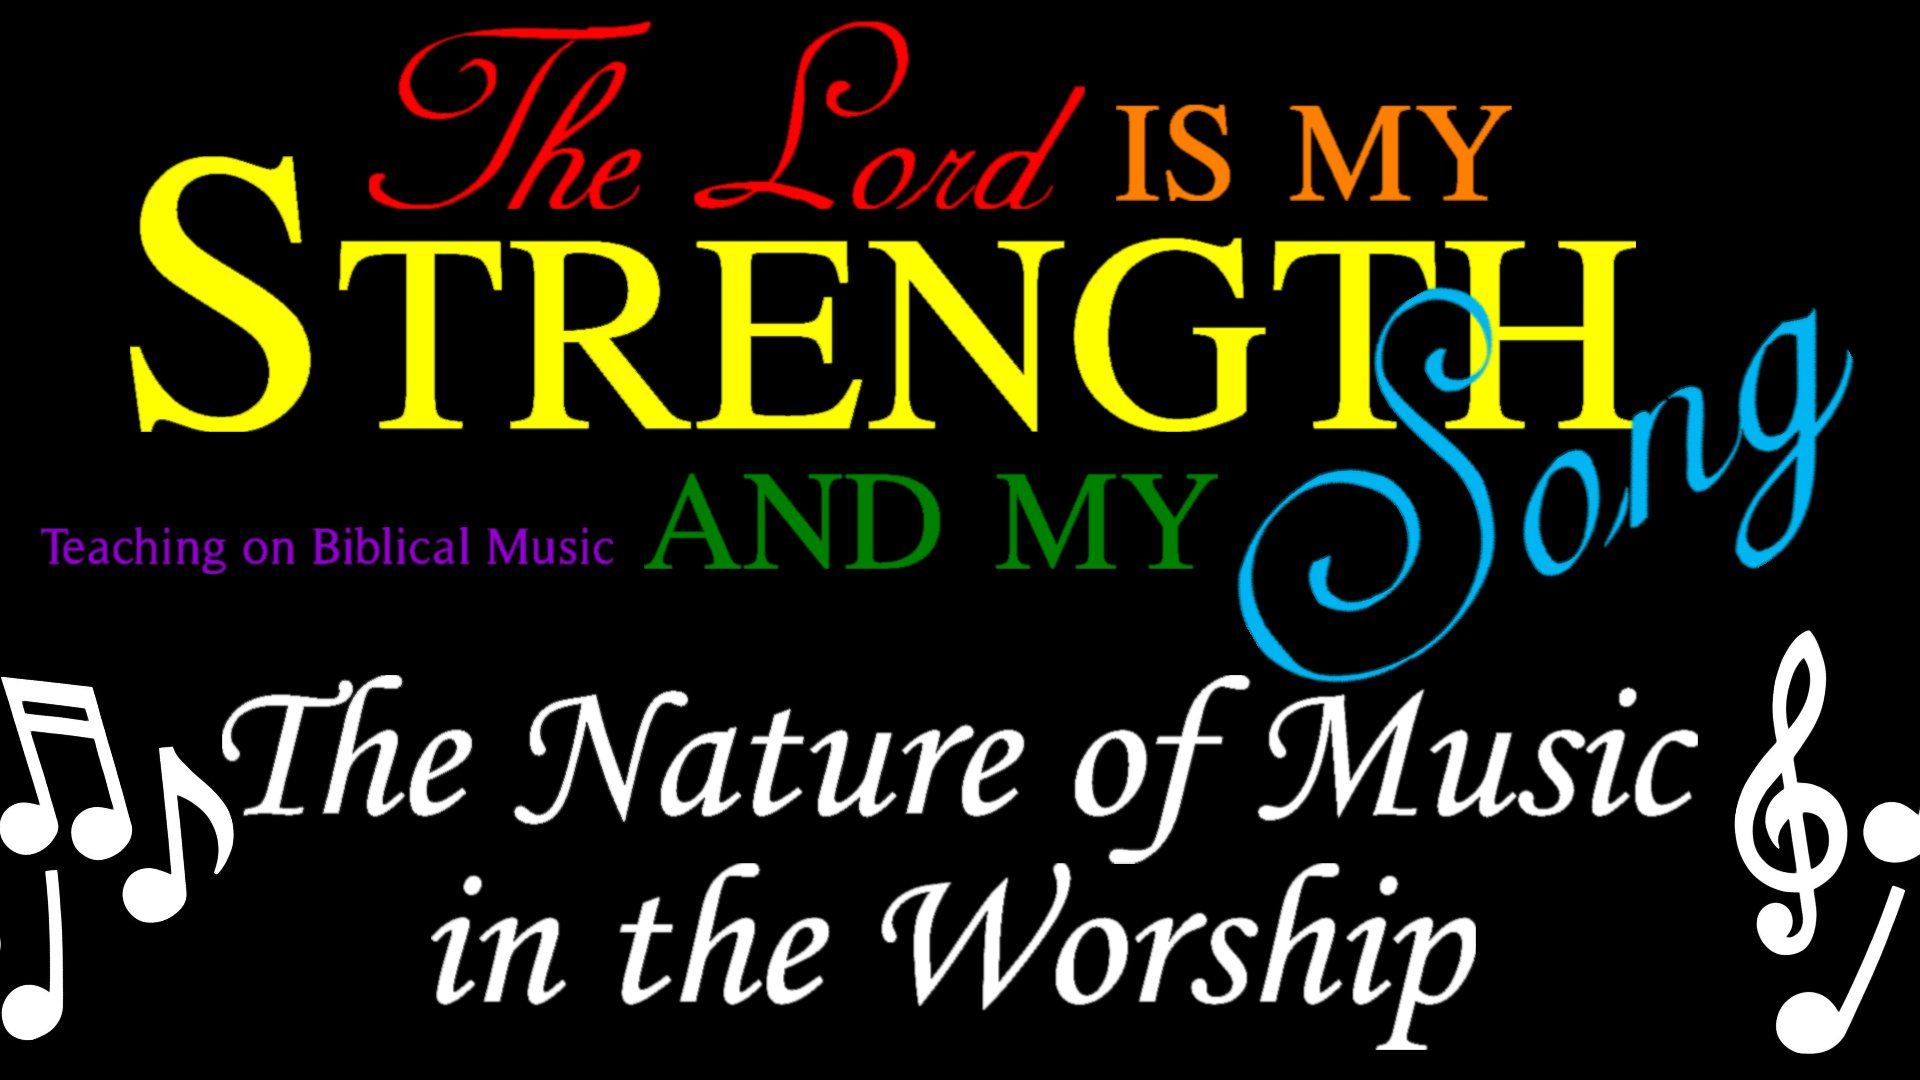 03 The Nature of Music in Worship